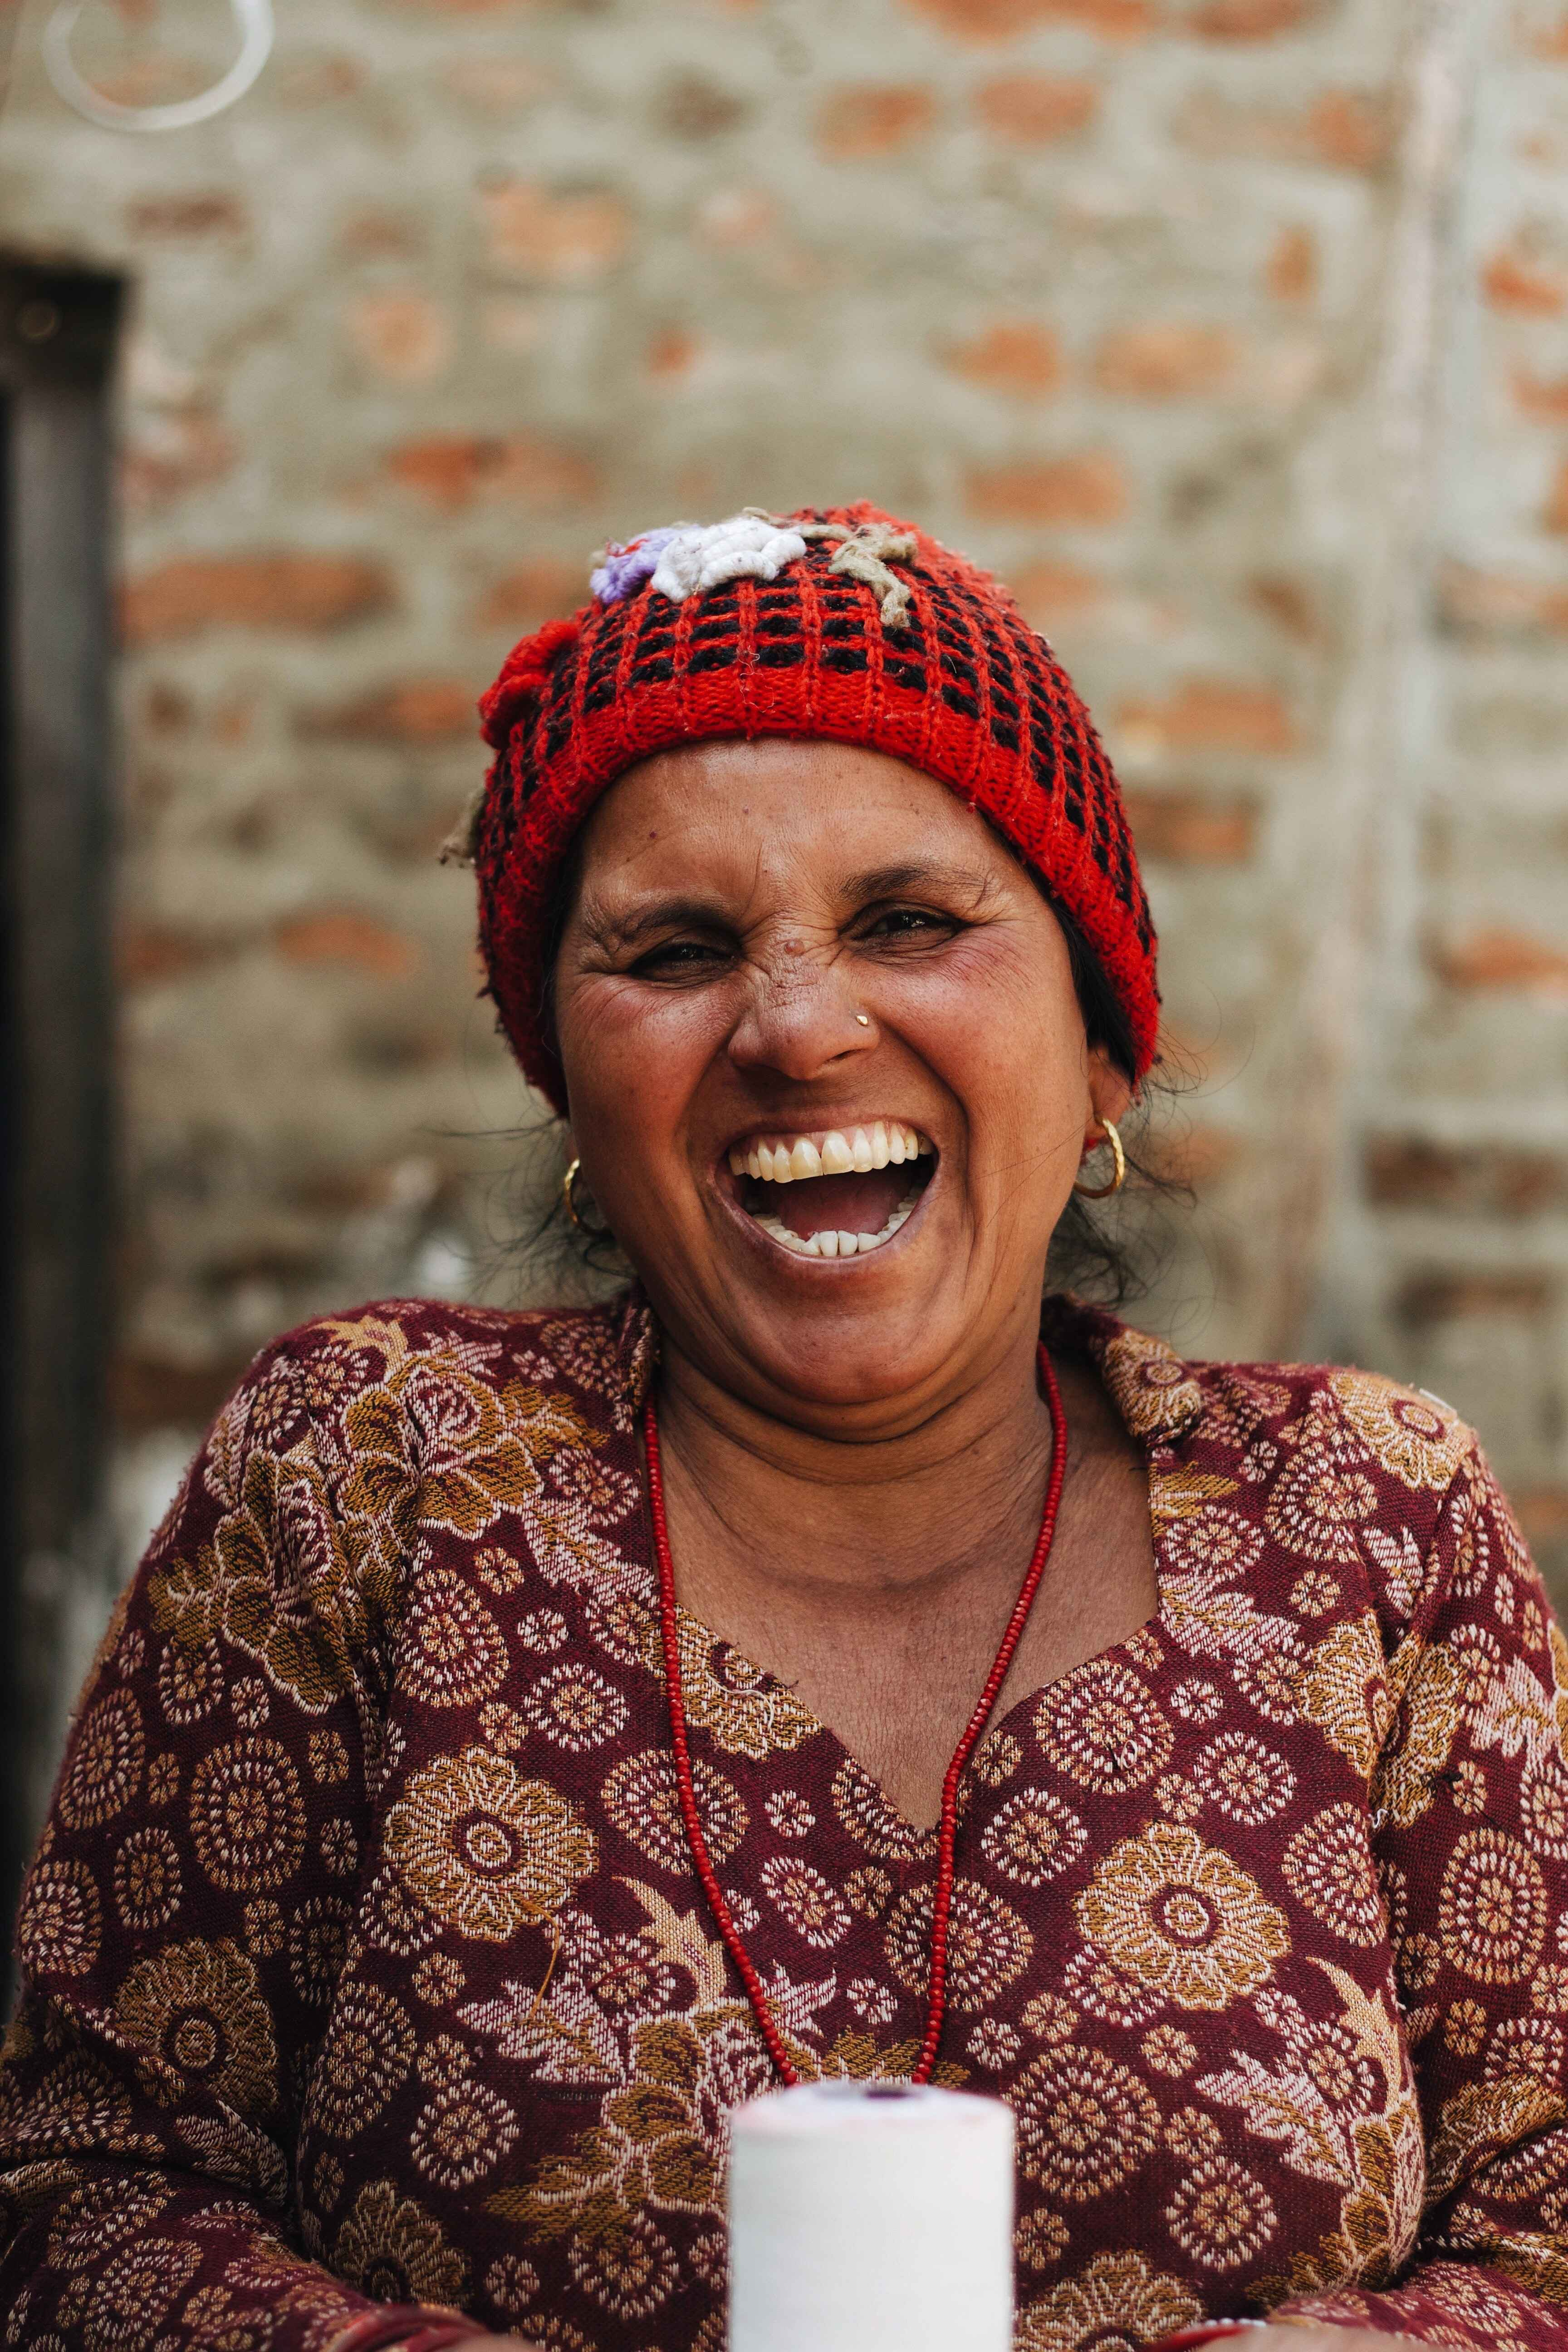 Image of an Asian woman smiling with her eyes closed wearing a red head wrap